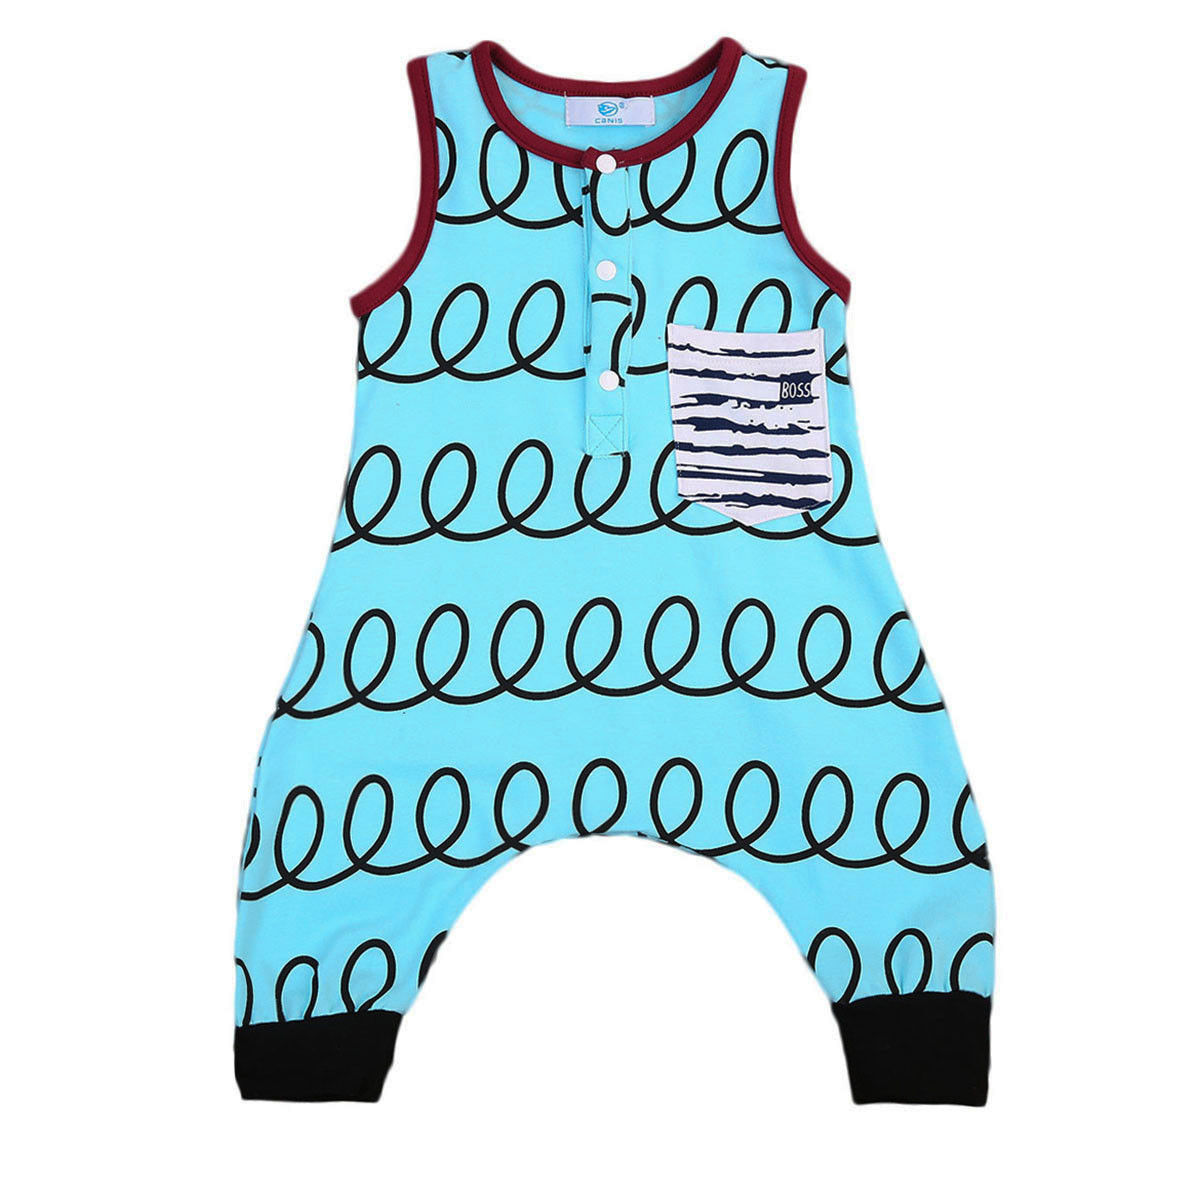 2017 New Summer Baby Boy Girl Romper Sleeveless Print Pocket Harem Jumpsuit One Pieces Newborn Clothes 0-24M 3pcs set newborn infant baby boy girl clothes 2017 summer short sleeve leopard floral romper bodysuit headband shoes outfits